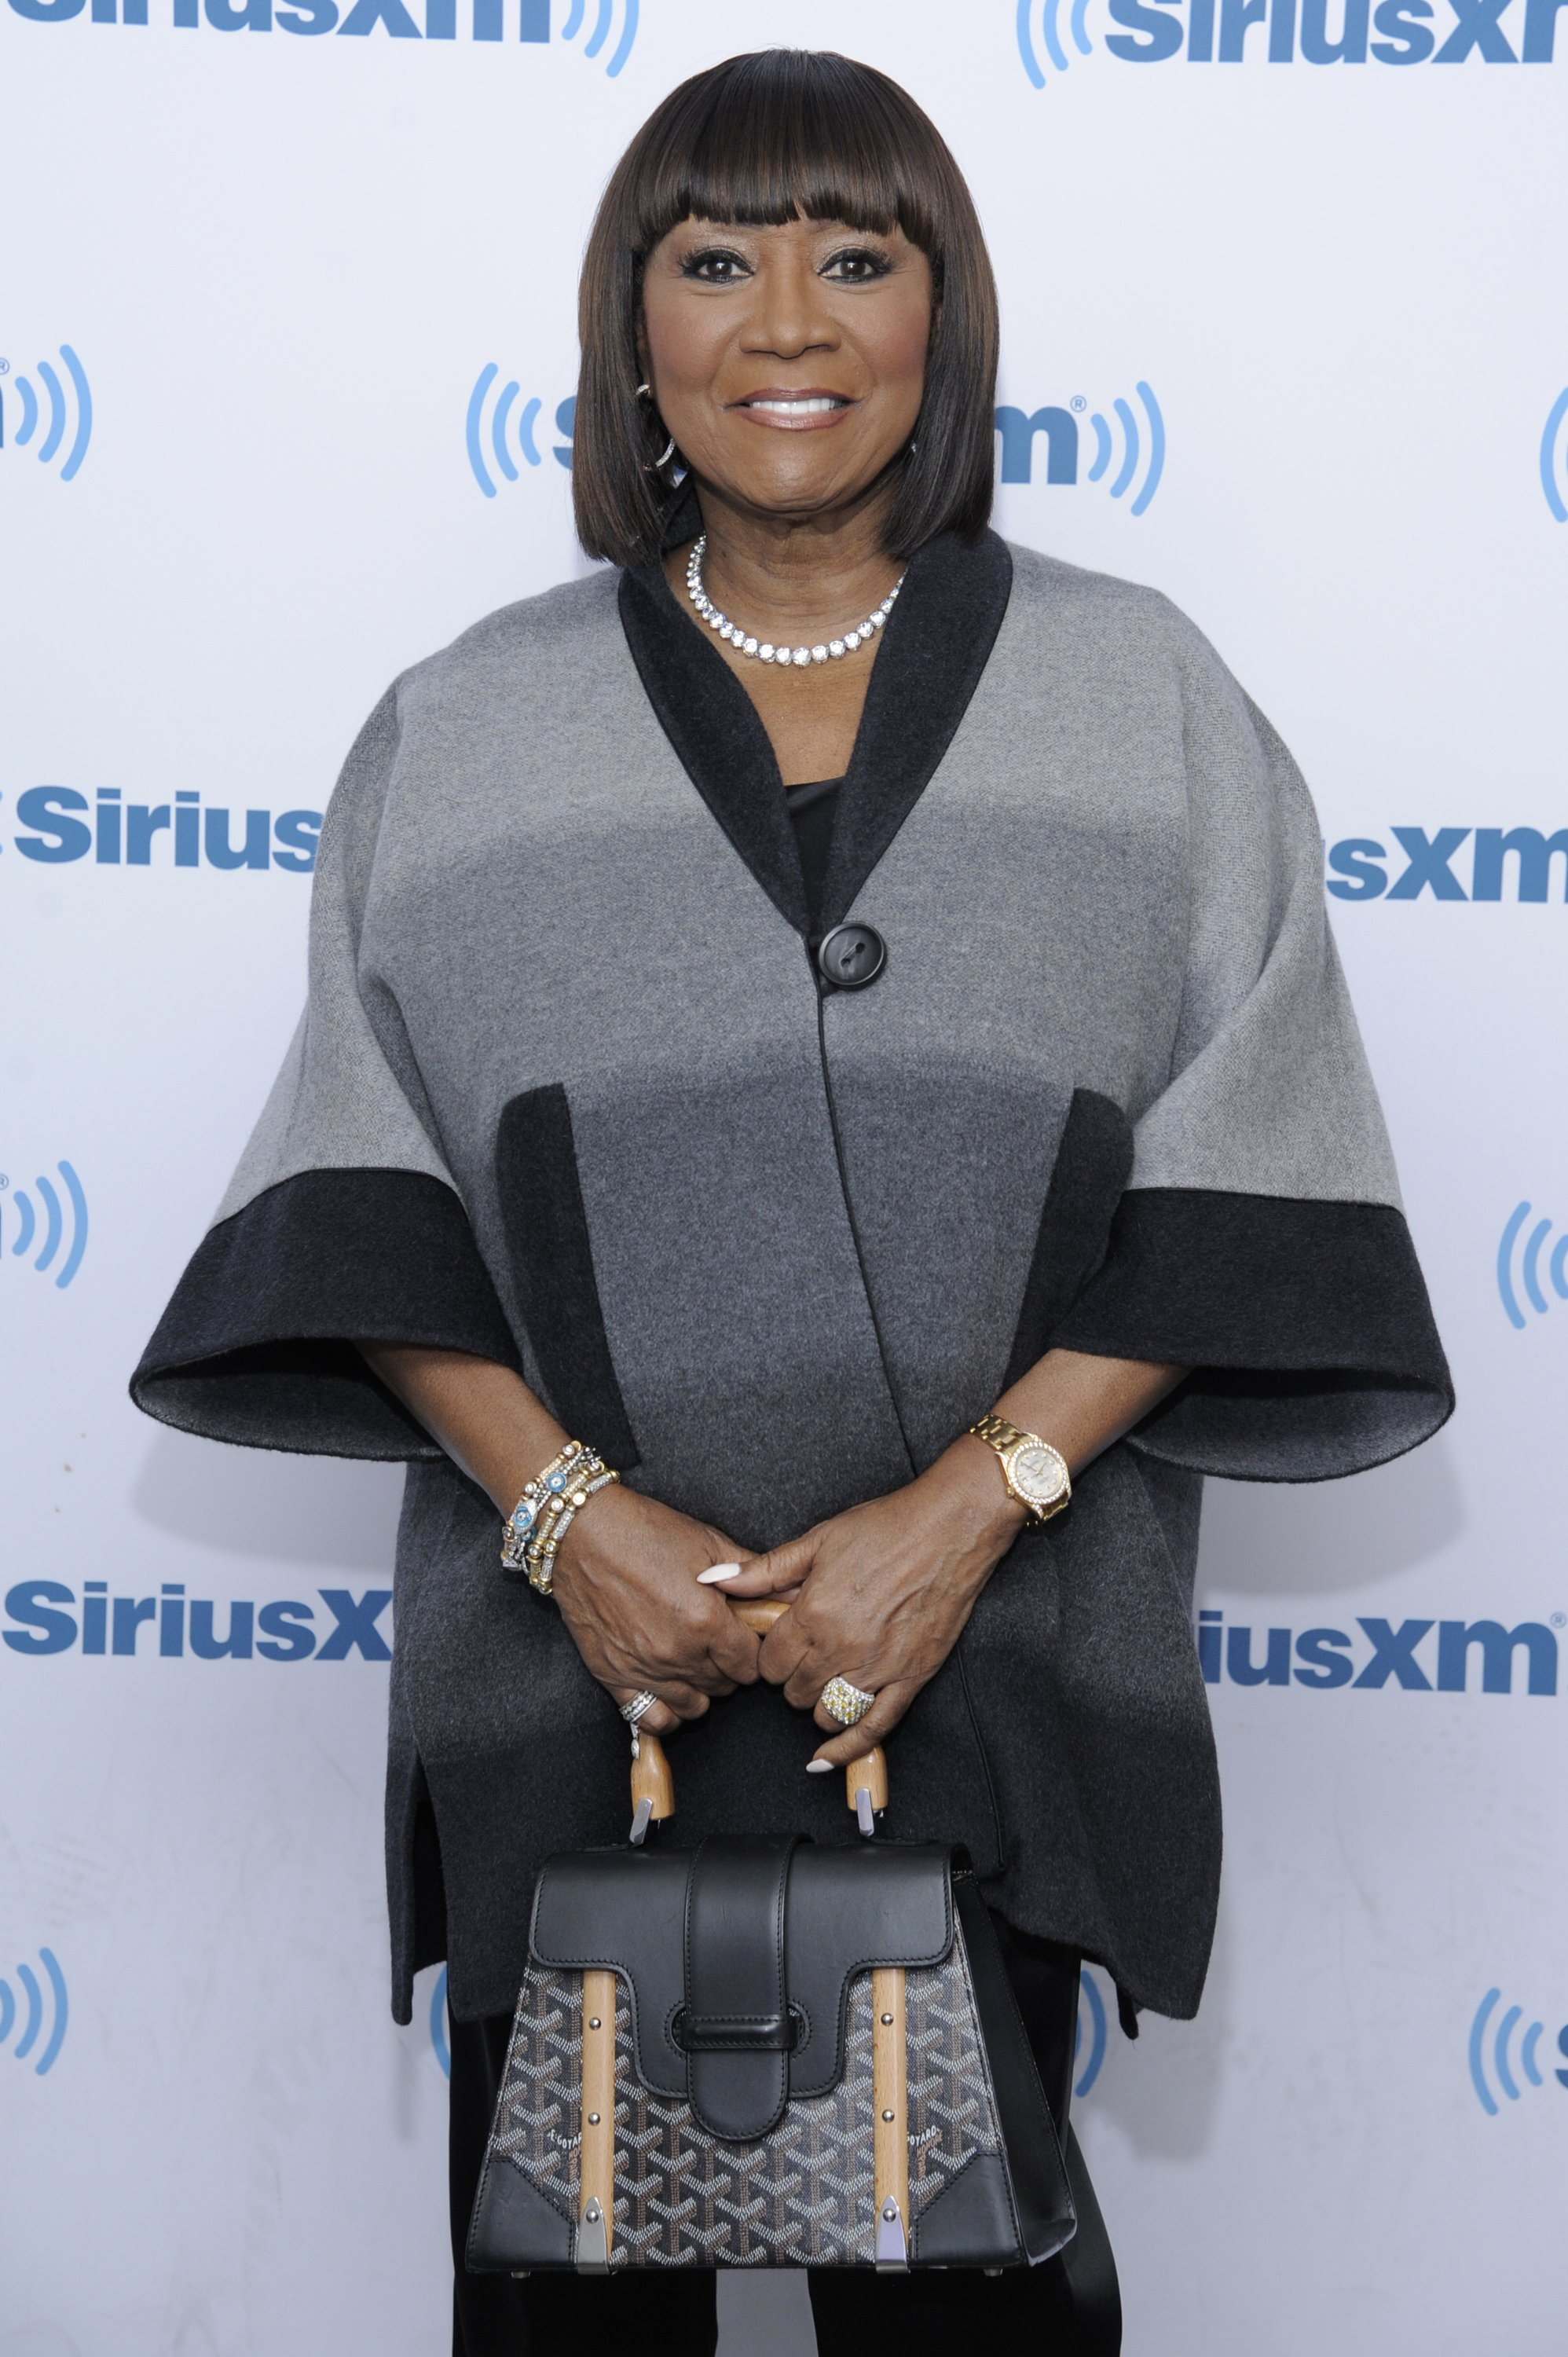 Patti LaBelle visiting SiriusXM Studio on September 14, 2016 in New York City. | Source: Getty